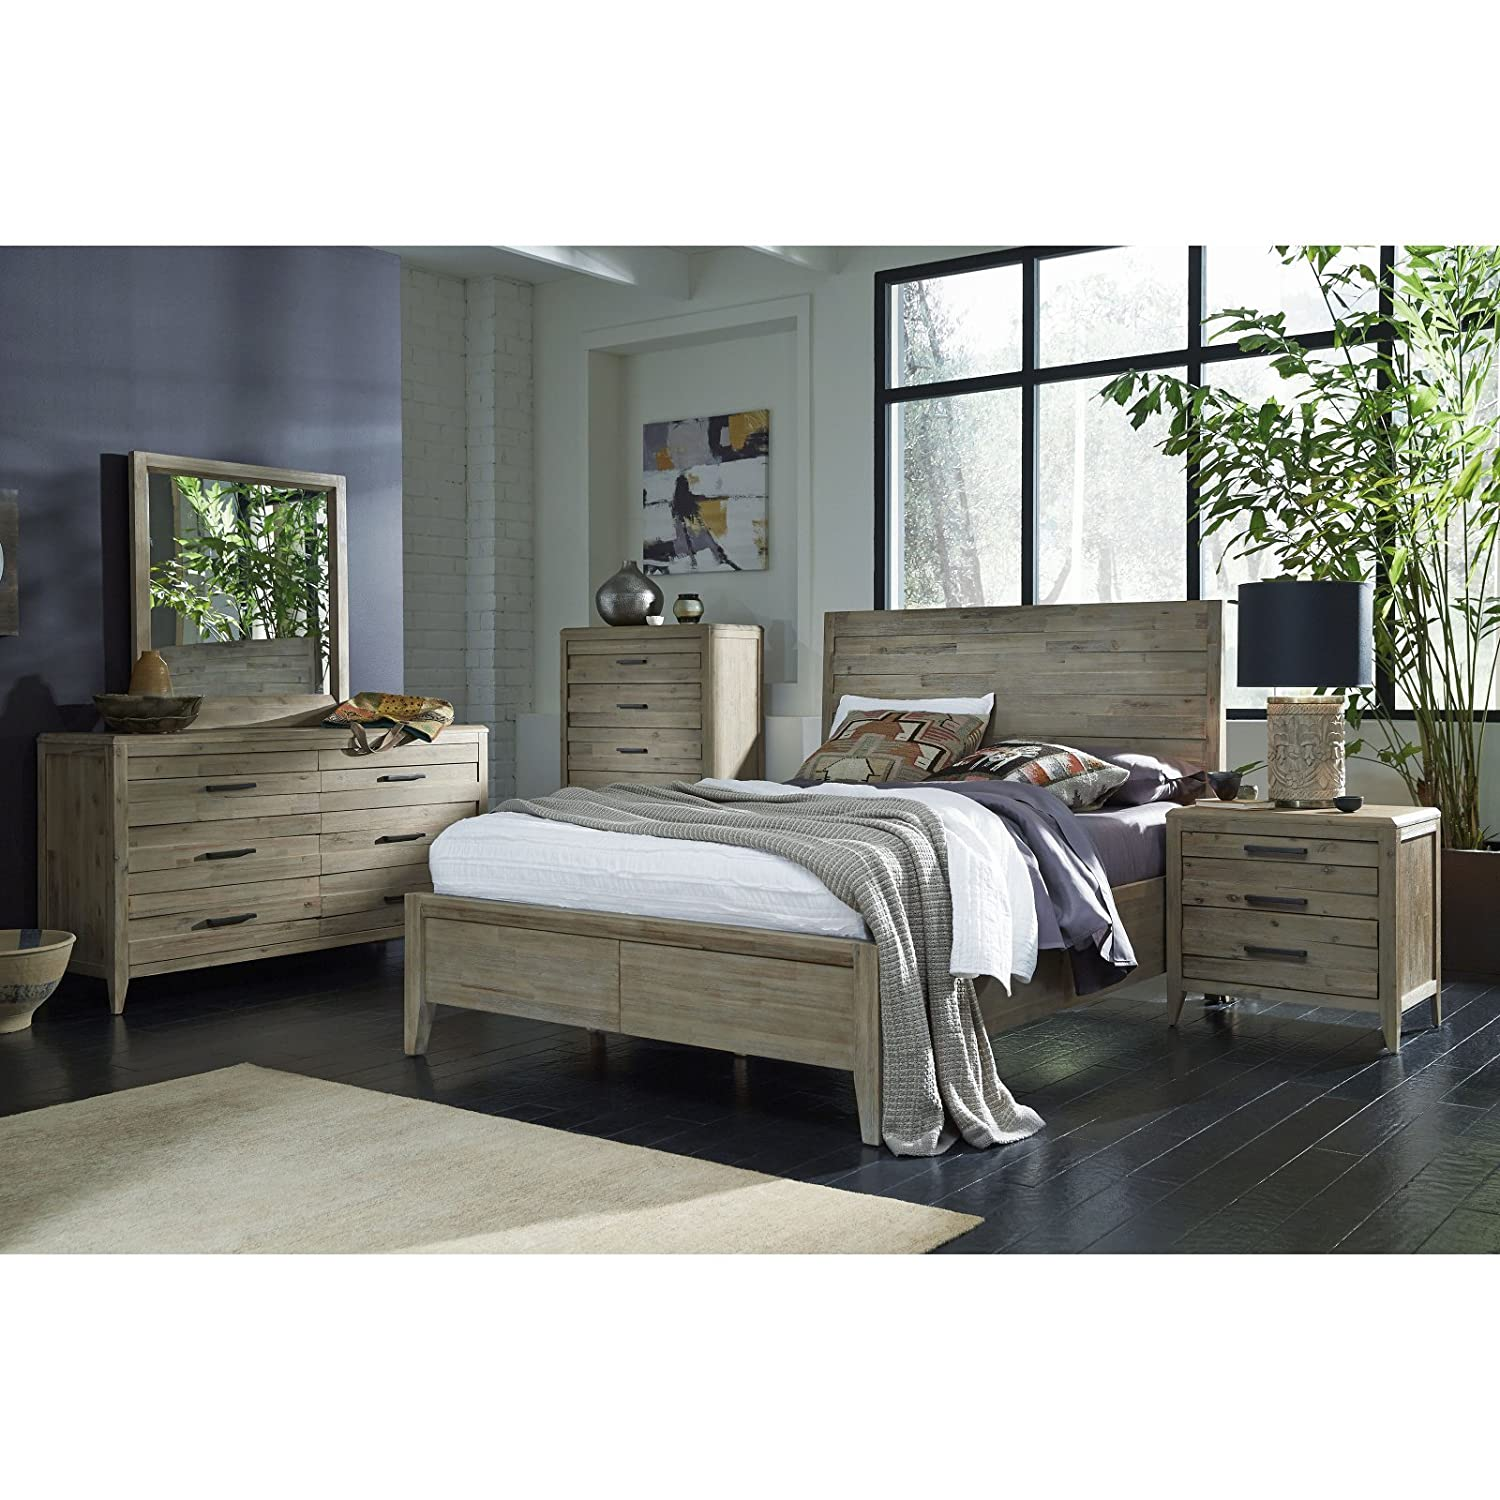 Amazon Casana Harbourside Panel Bed Kitchen & Dining